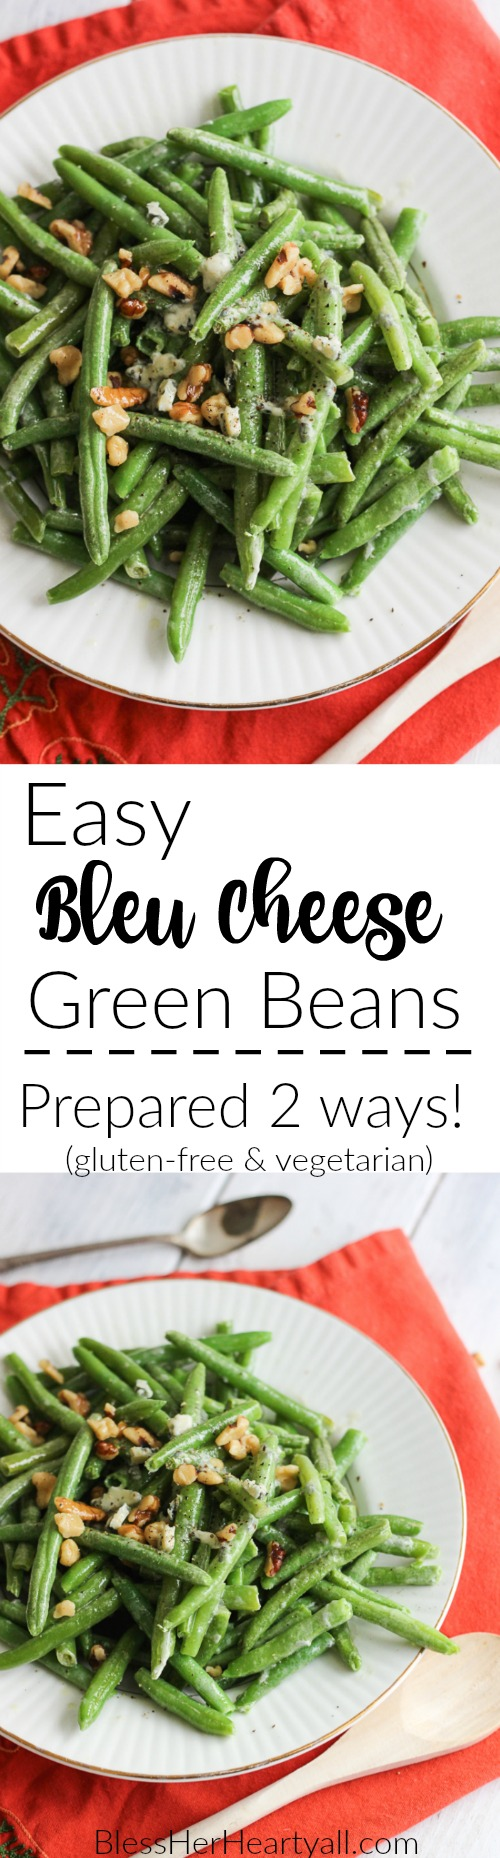 Easy bleu cheese green beans Fresh green beans are prepared {can be prepared in TWO ways!} with a decadent blue cheese sauce drizzled and stirred over top for a warm, hearty, cheesy, creamy gluten-free addition to your holiday table. And the best part? It will look like you had been in the kitchen sweating to make this dish happen, when in reality… it was soooooo easy-peasy. | www.blessherheartyall.com|